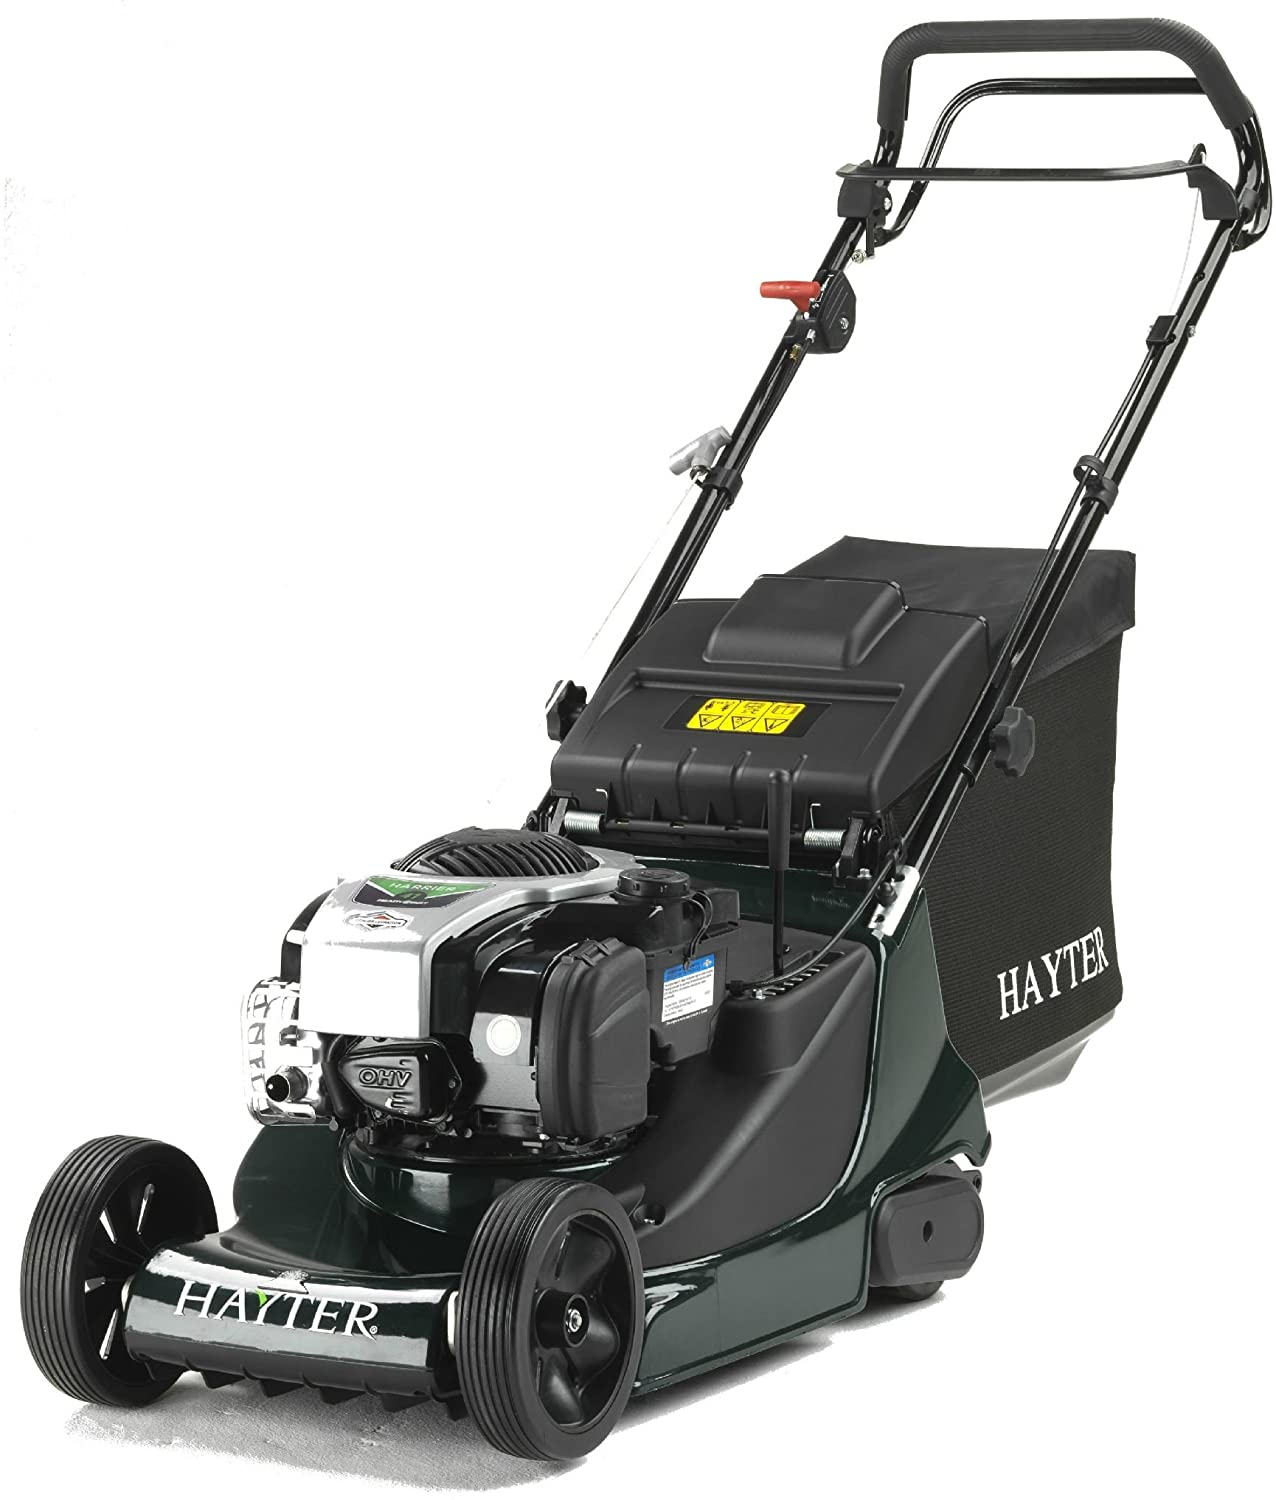 Hayter Harrier 41 Autodrive Rear Roller Lawnmower